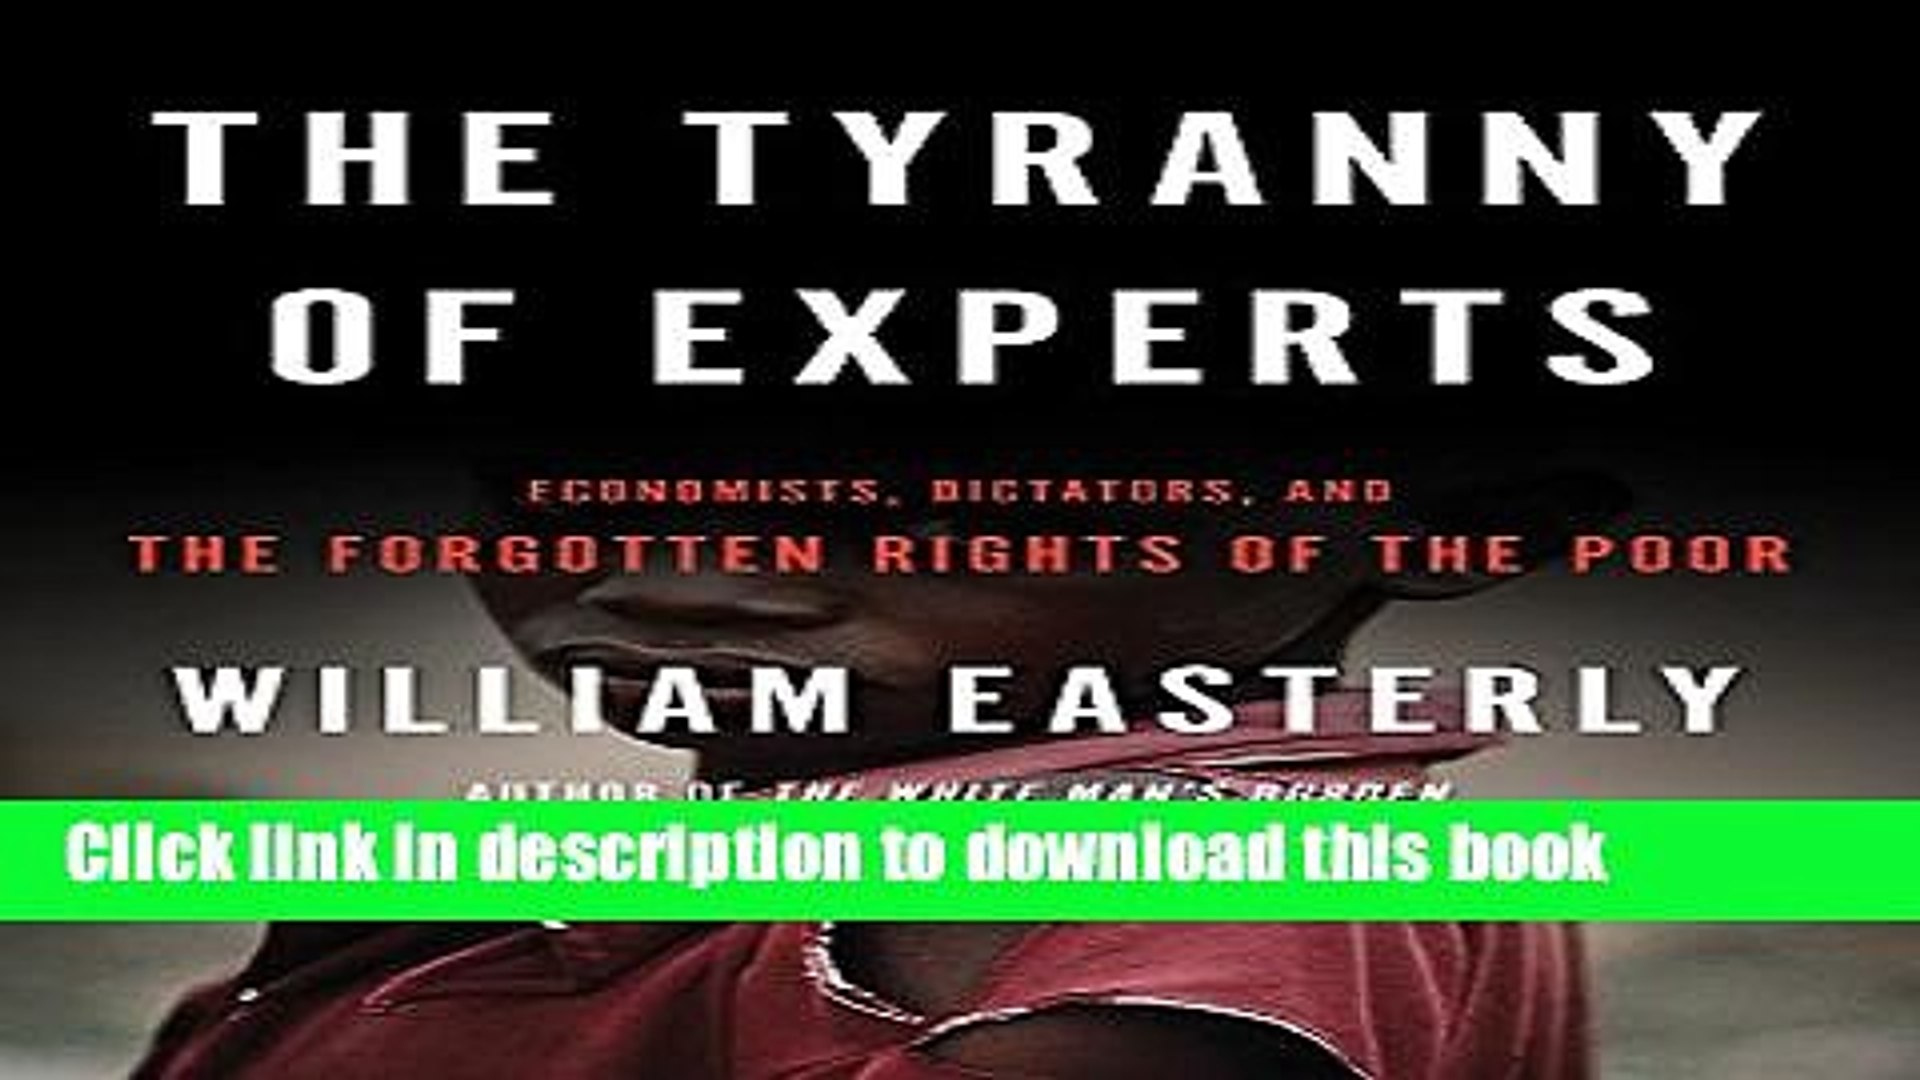 Books The Tyranny of Experts: Economists, Dictators, and the Forgotten  Rights of the Poor Free - video dailymotion